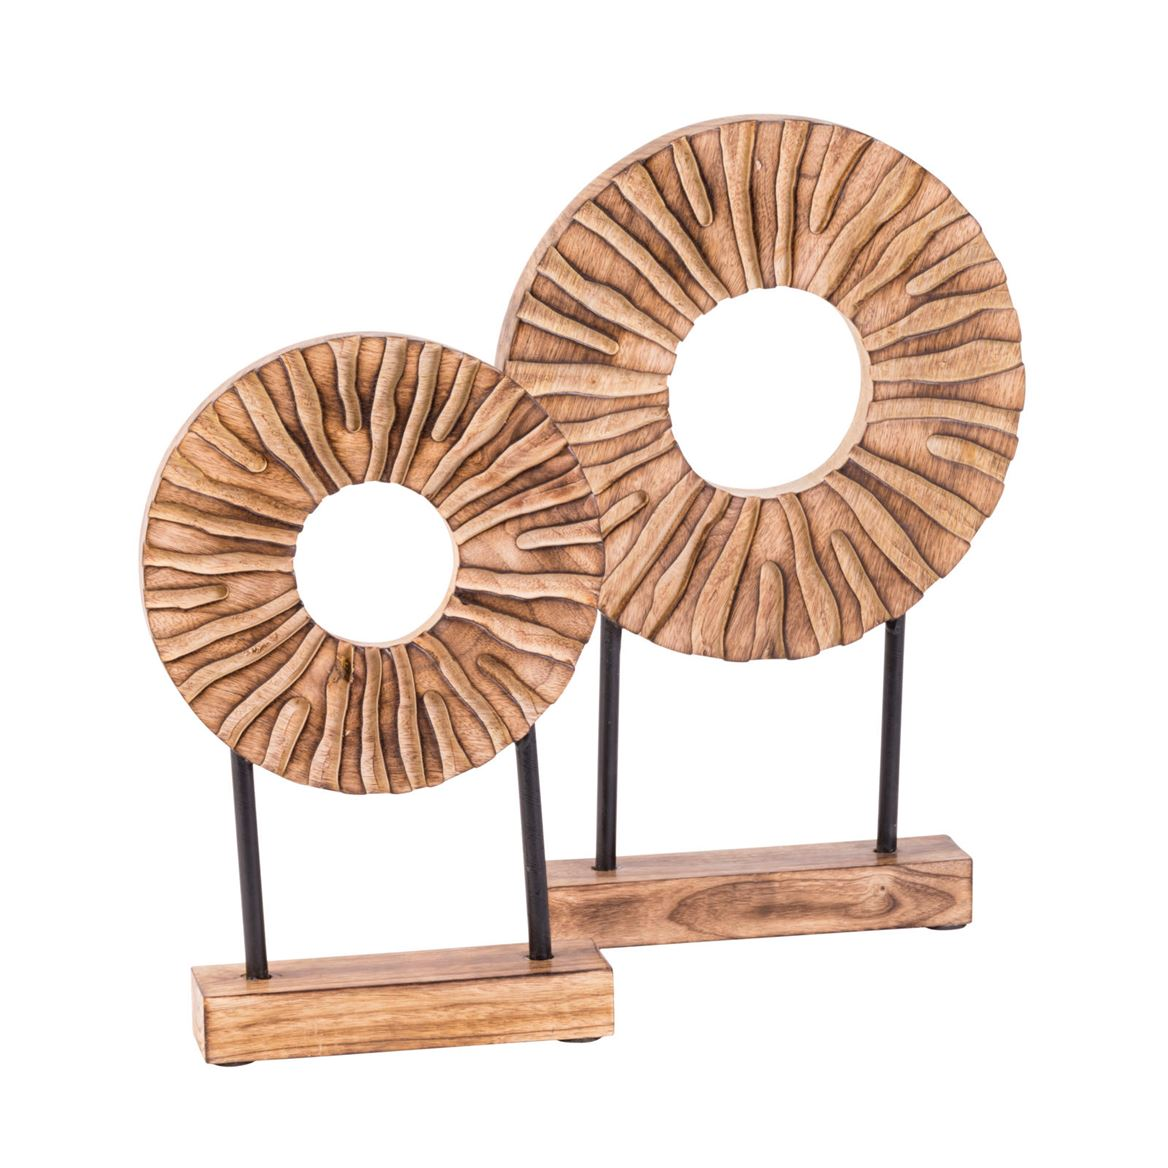 RADIUS Objeto decorativo natural A 37 x An. 25 x P 5 cm_radius-objeto-decorativo-natural-a-37-x-an--25-x-p-5-cm